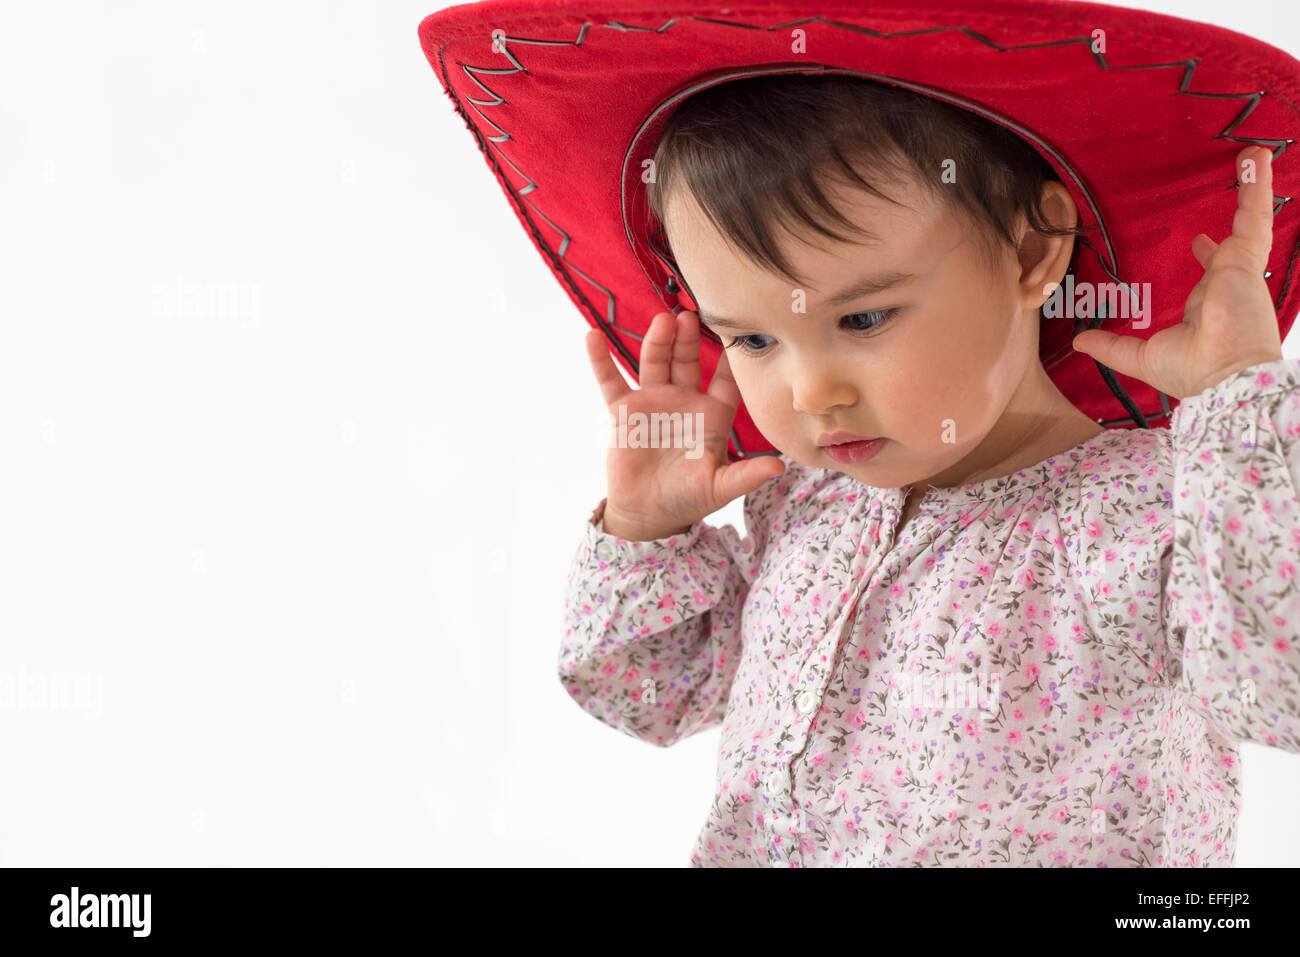 Little Sombrero Immagini   Little Sombrero Fotos Stock - Alamy c7c5ff39d68c